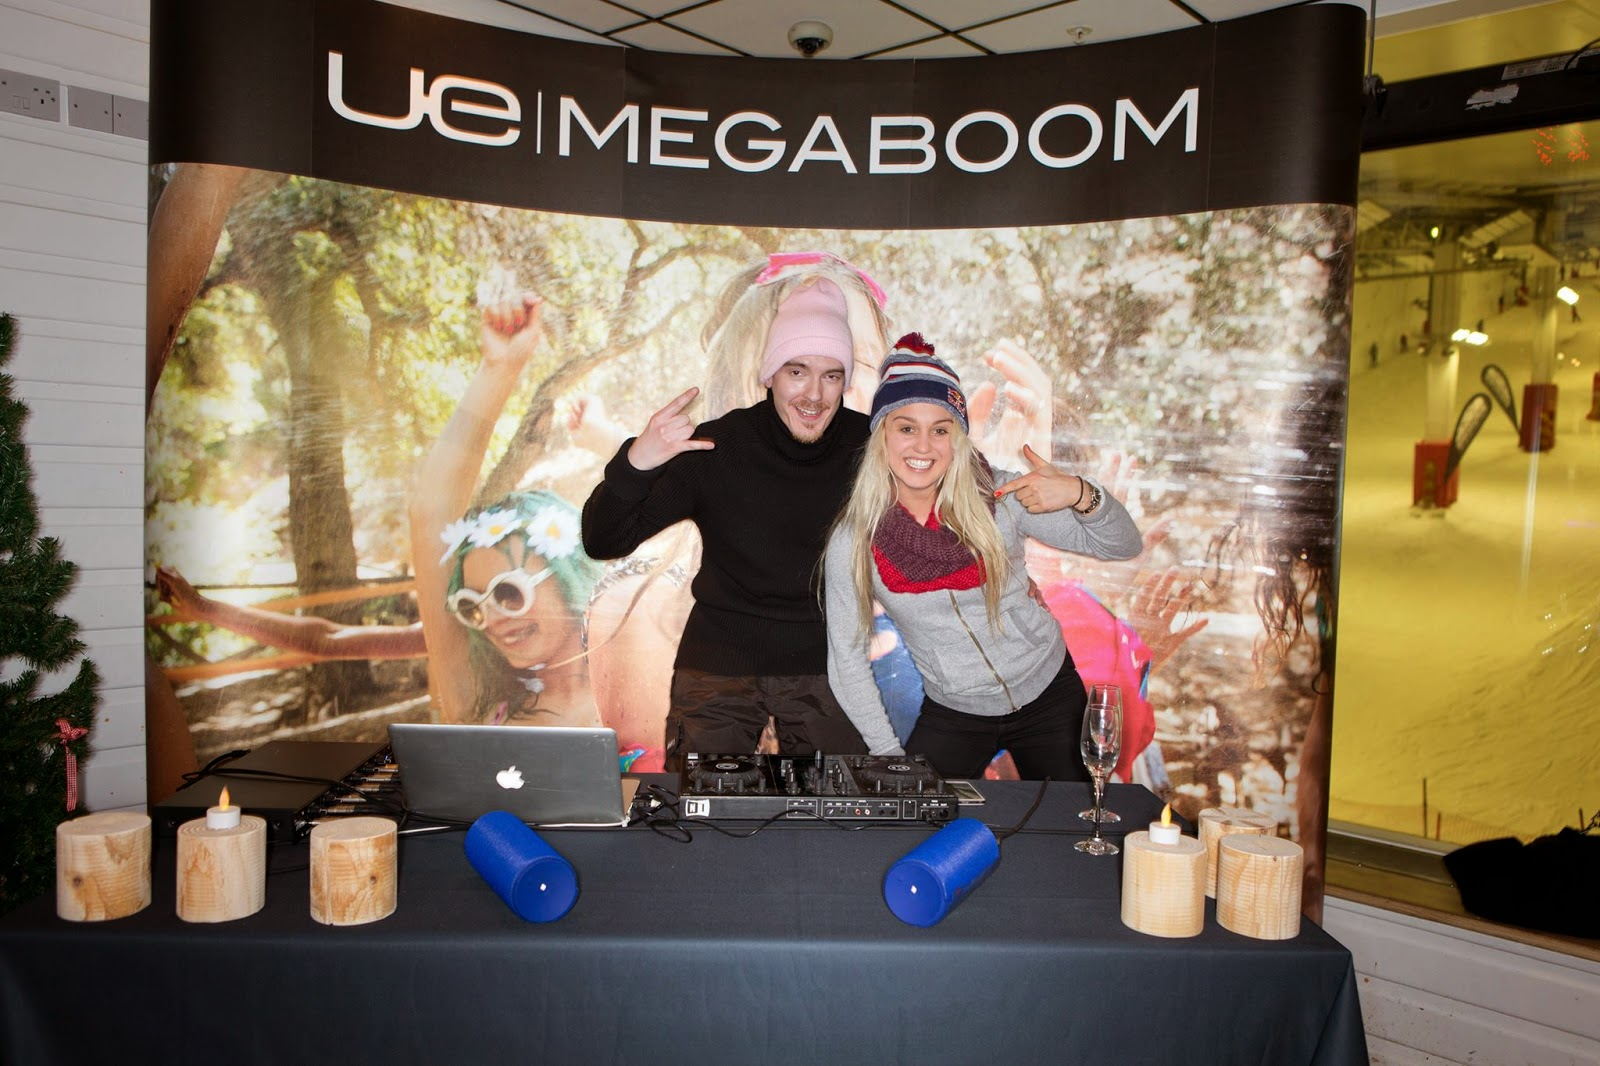 Aimee Fuller at the UE Megaboom launch event